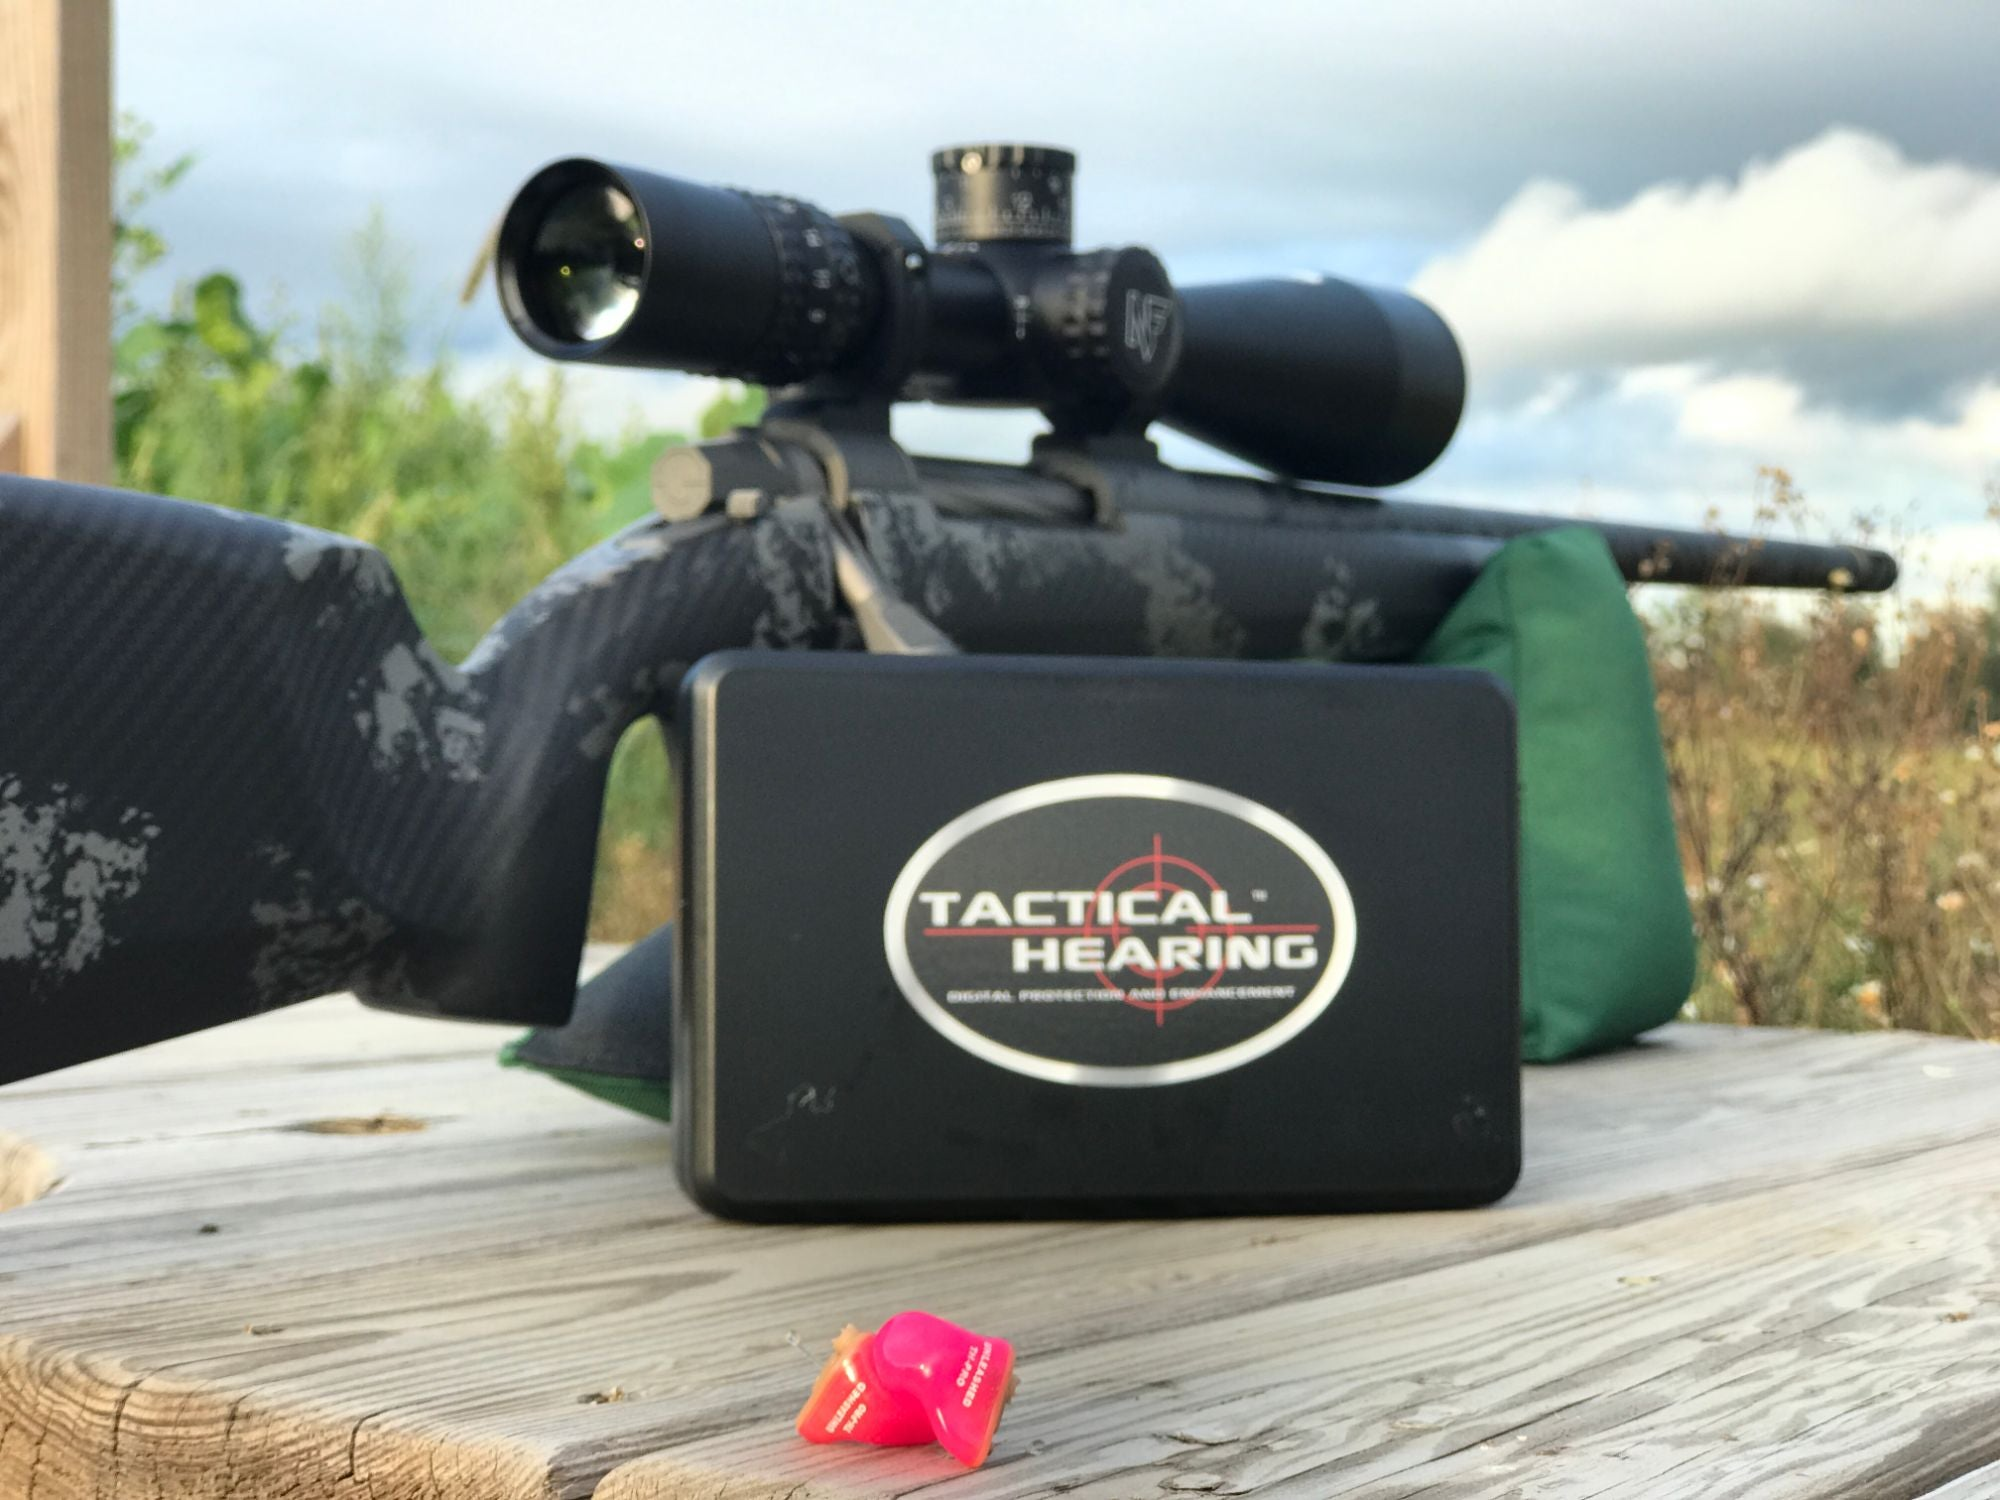 Tactical Hearing Ear Protection and Enhancement For Hunters Pilots Police Shooters Hearing Protection